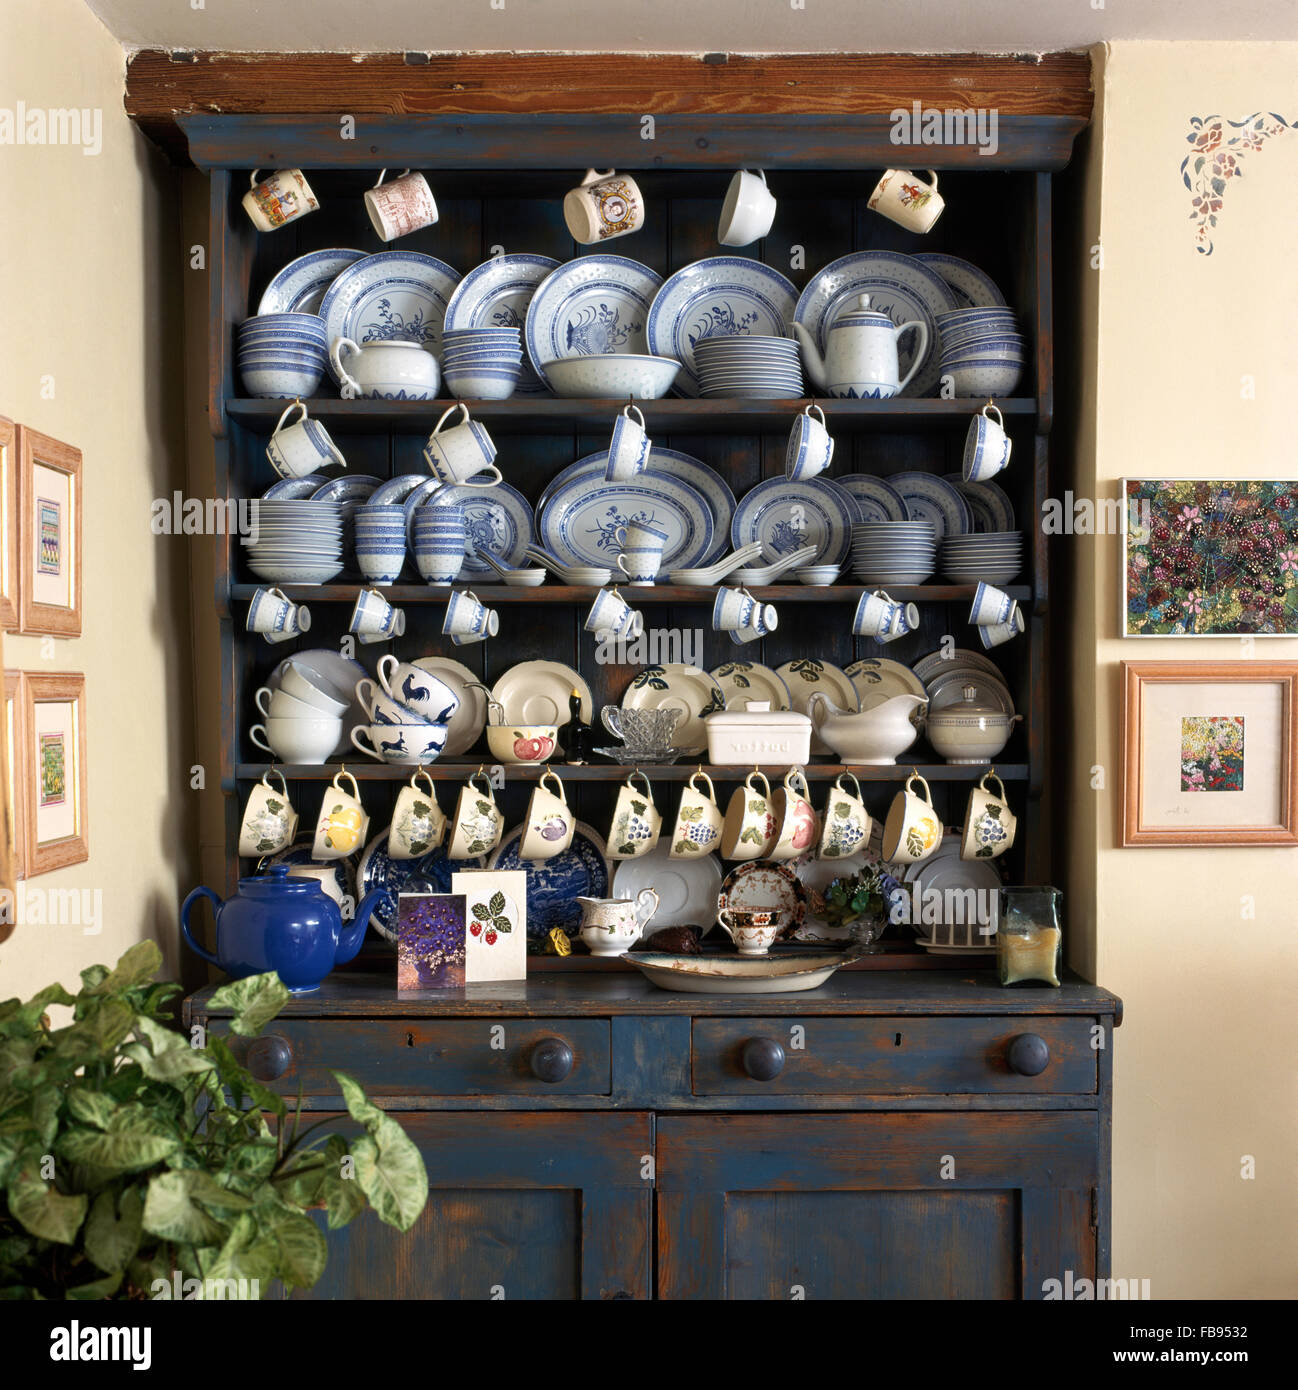 Collection of china on a painted dresser in a country dining room - Stock Image